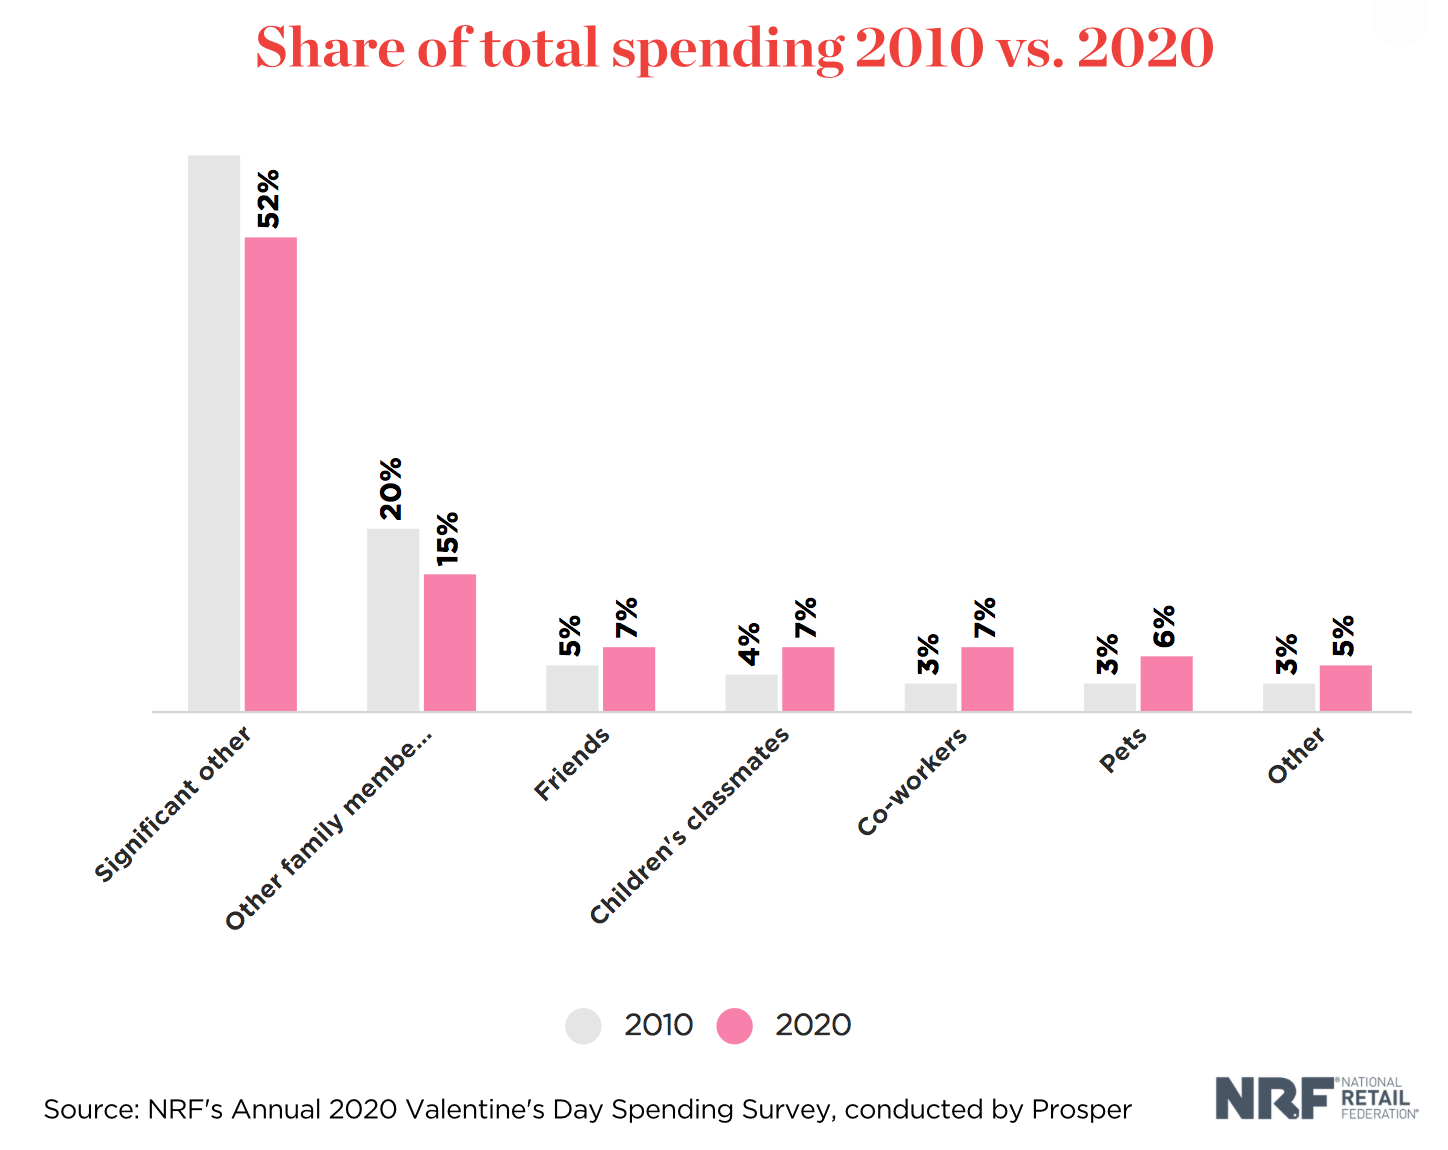 Share of total spending 2010 vs 2020 NRF